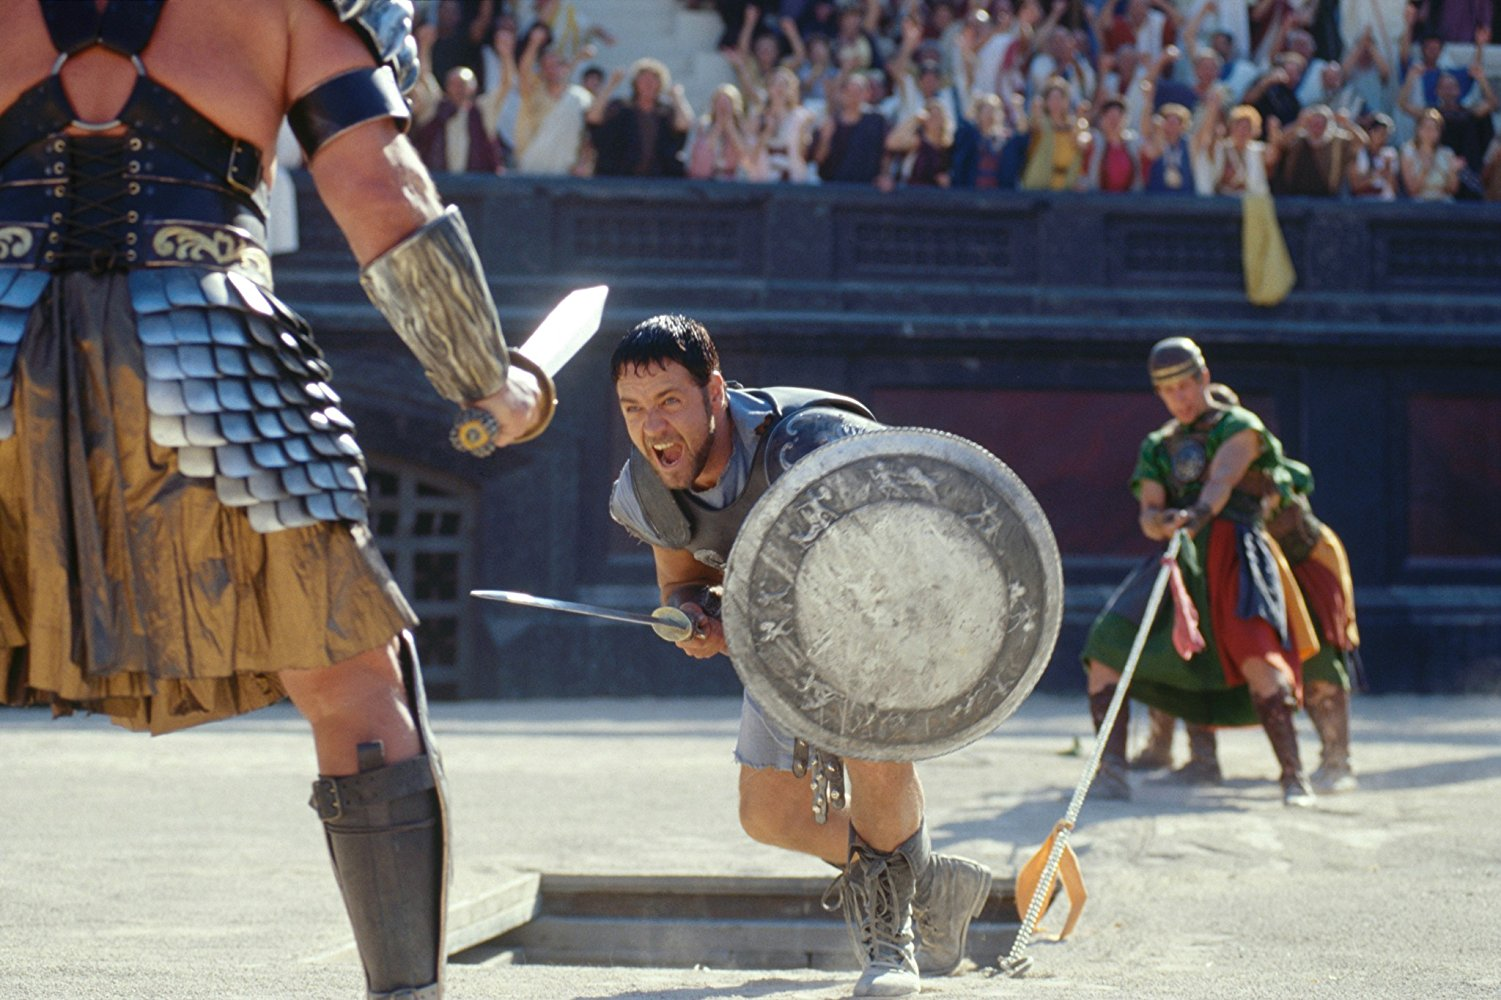 Gladiator 2 : la suite du film de Ridley Scott officiellement lancée !